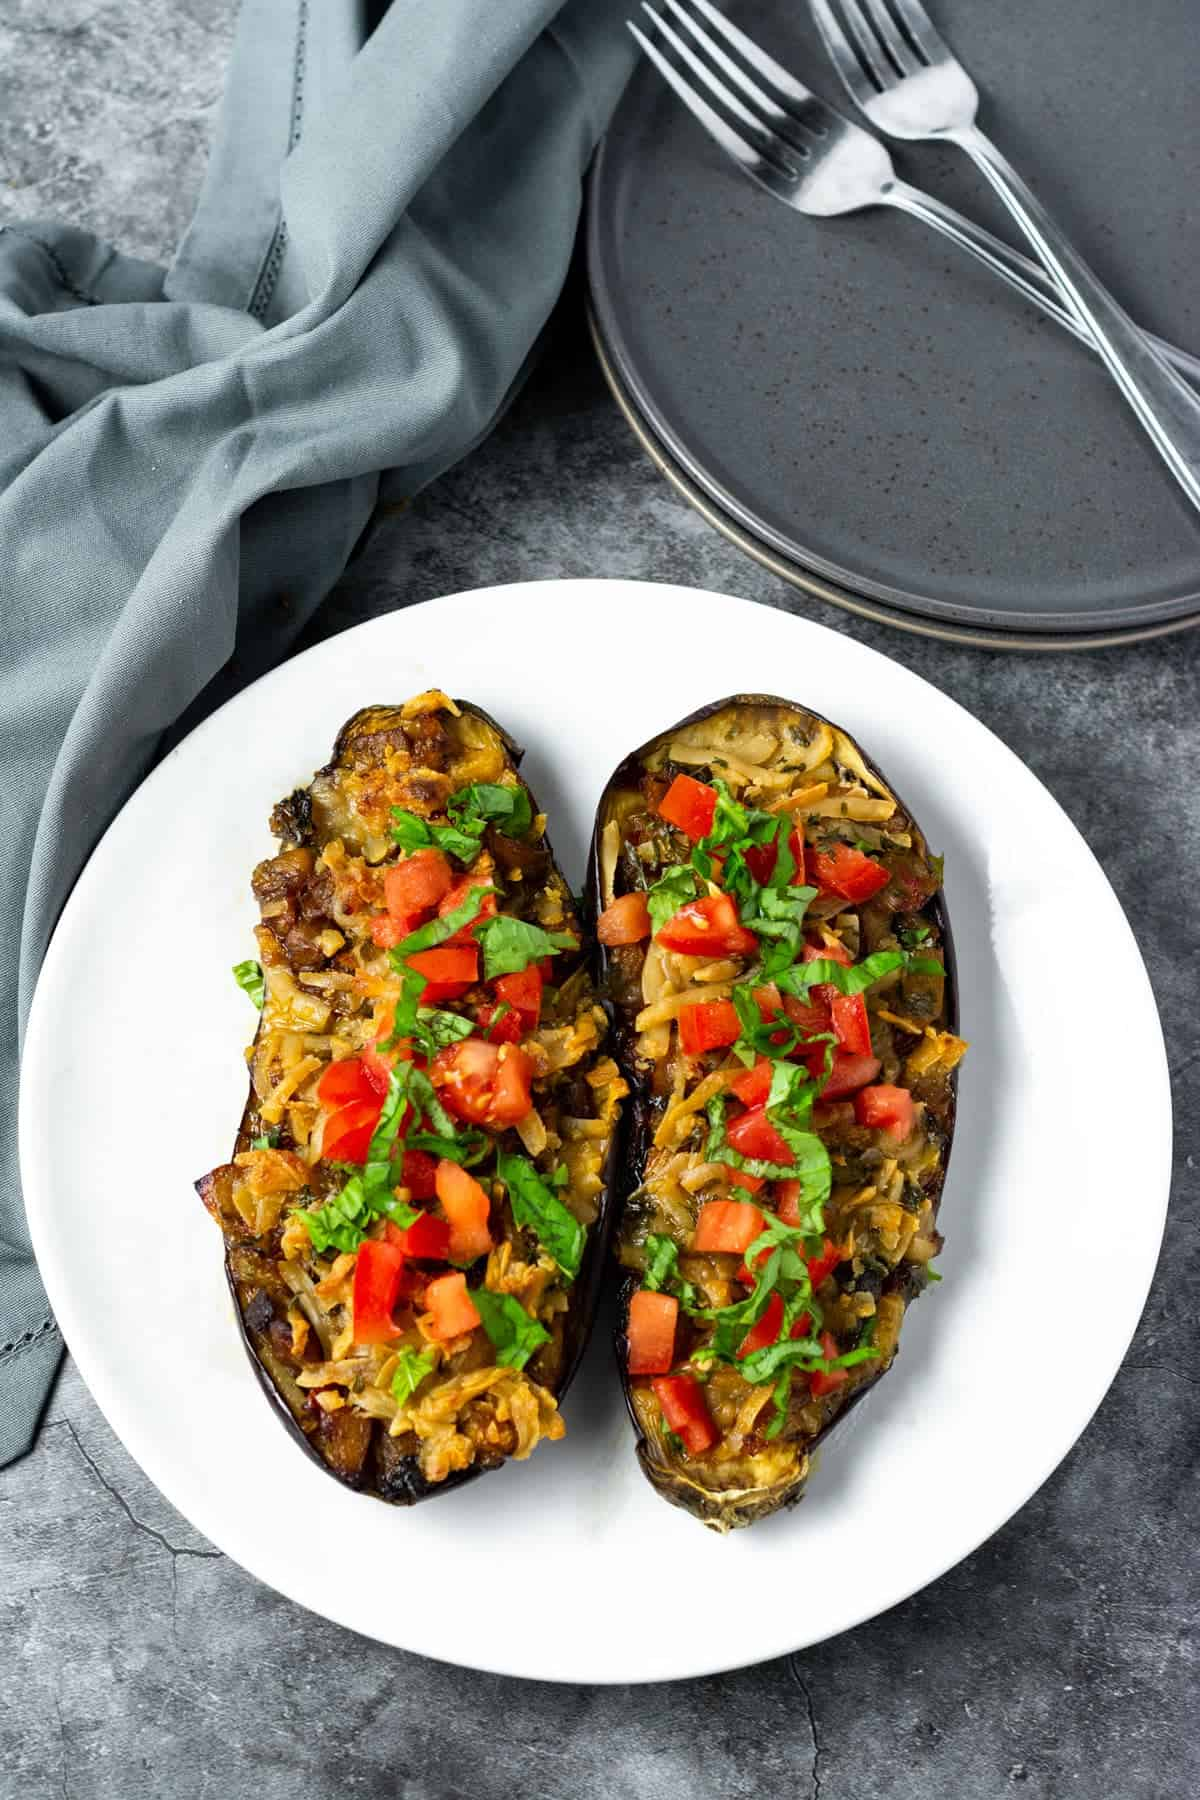 Vegan stuffed eggplant on a white plate with grey napkin, 2 forks on a grey background